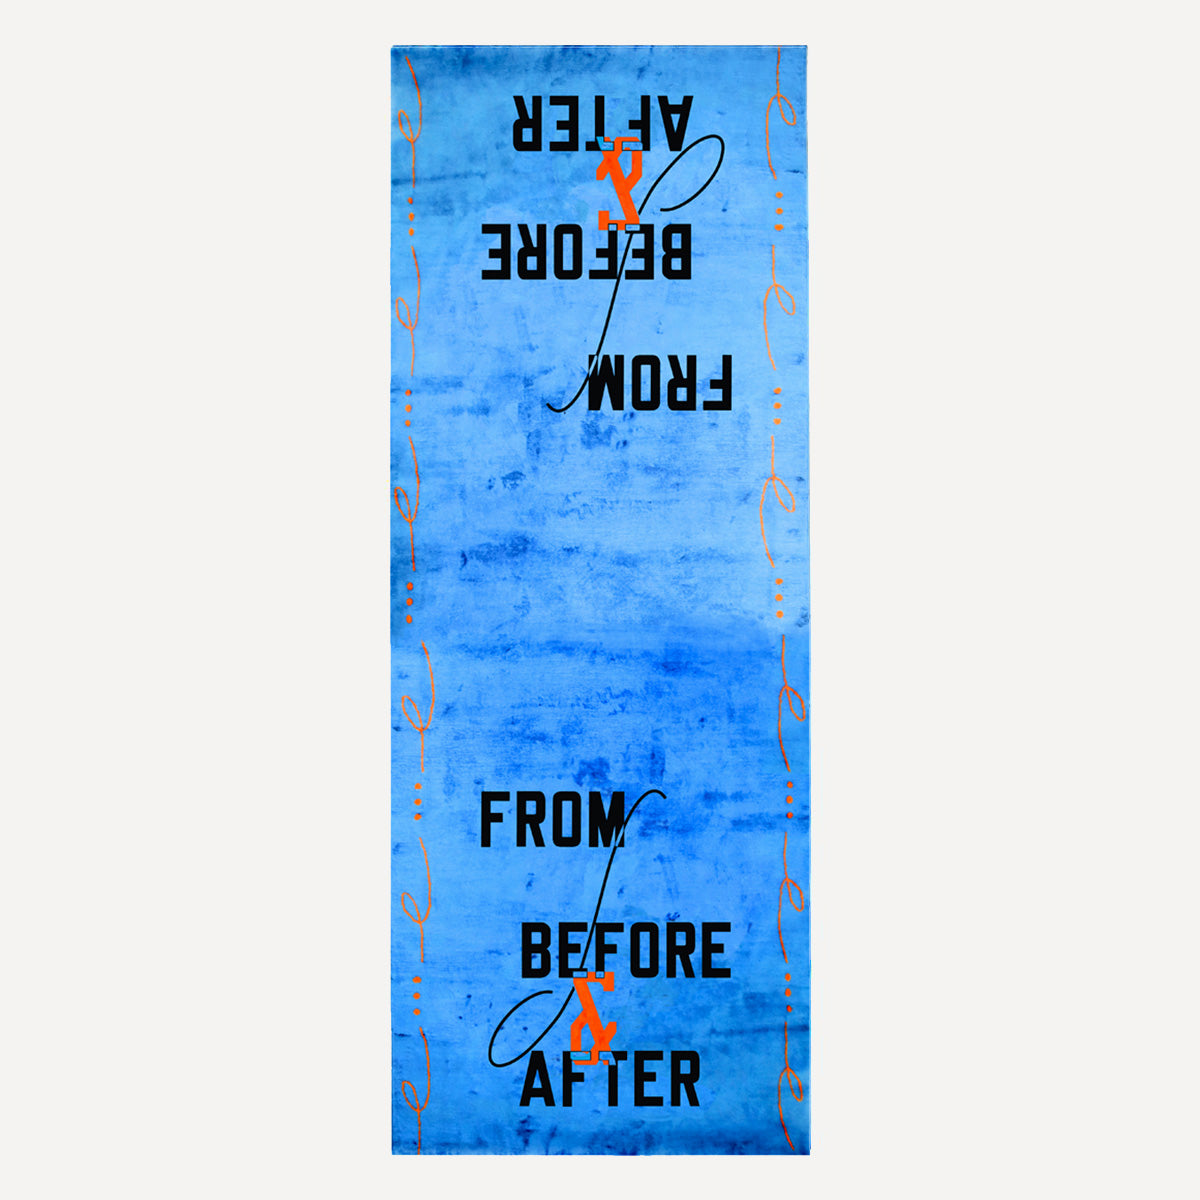 LAWRENCE WEINER, FROM BEFORE AND AFTER, 2018